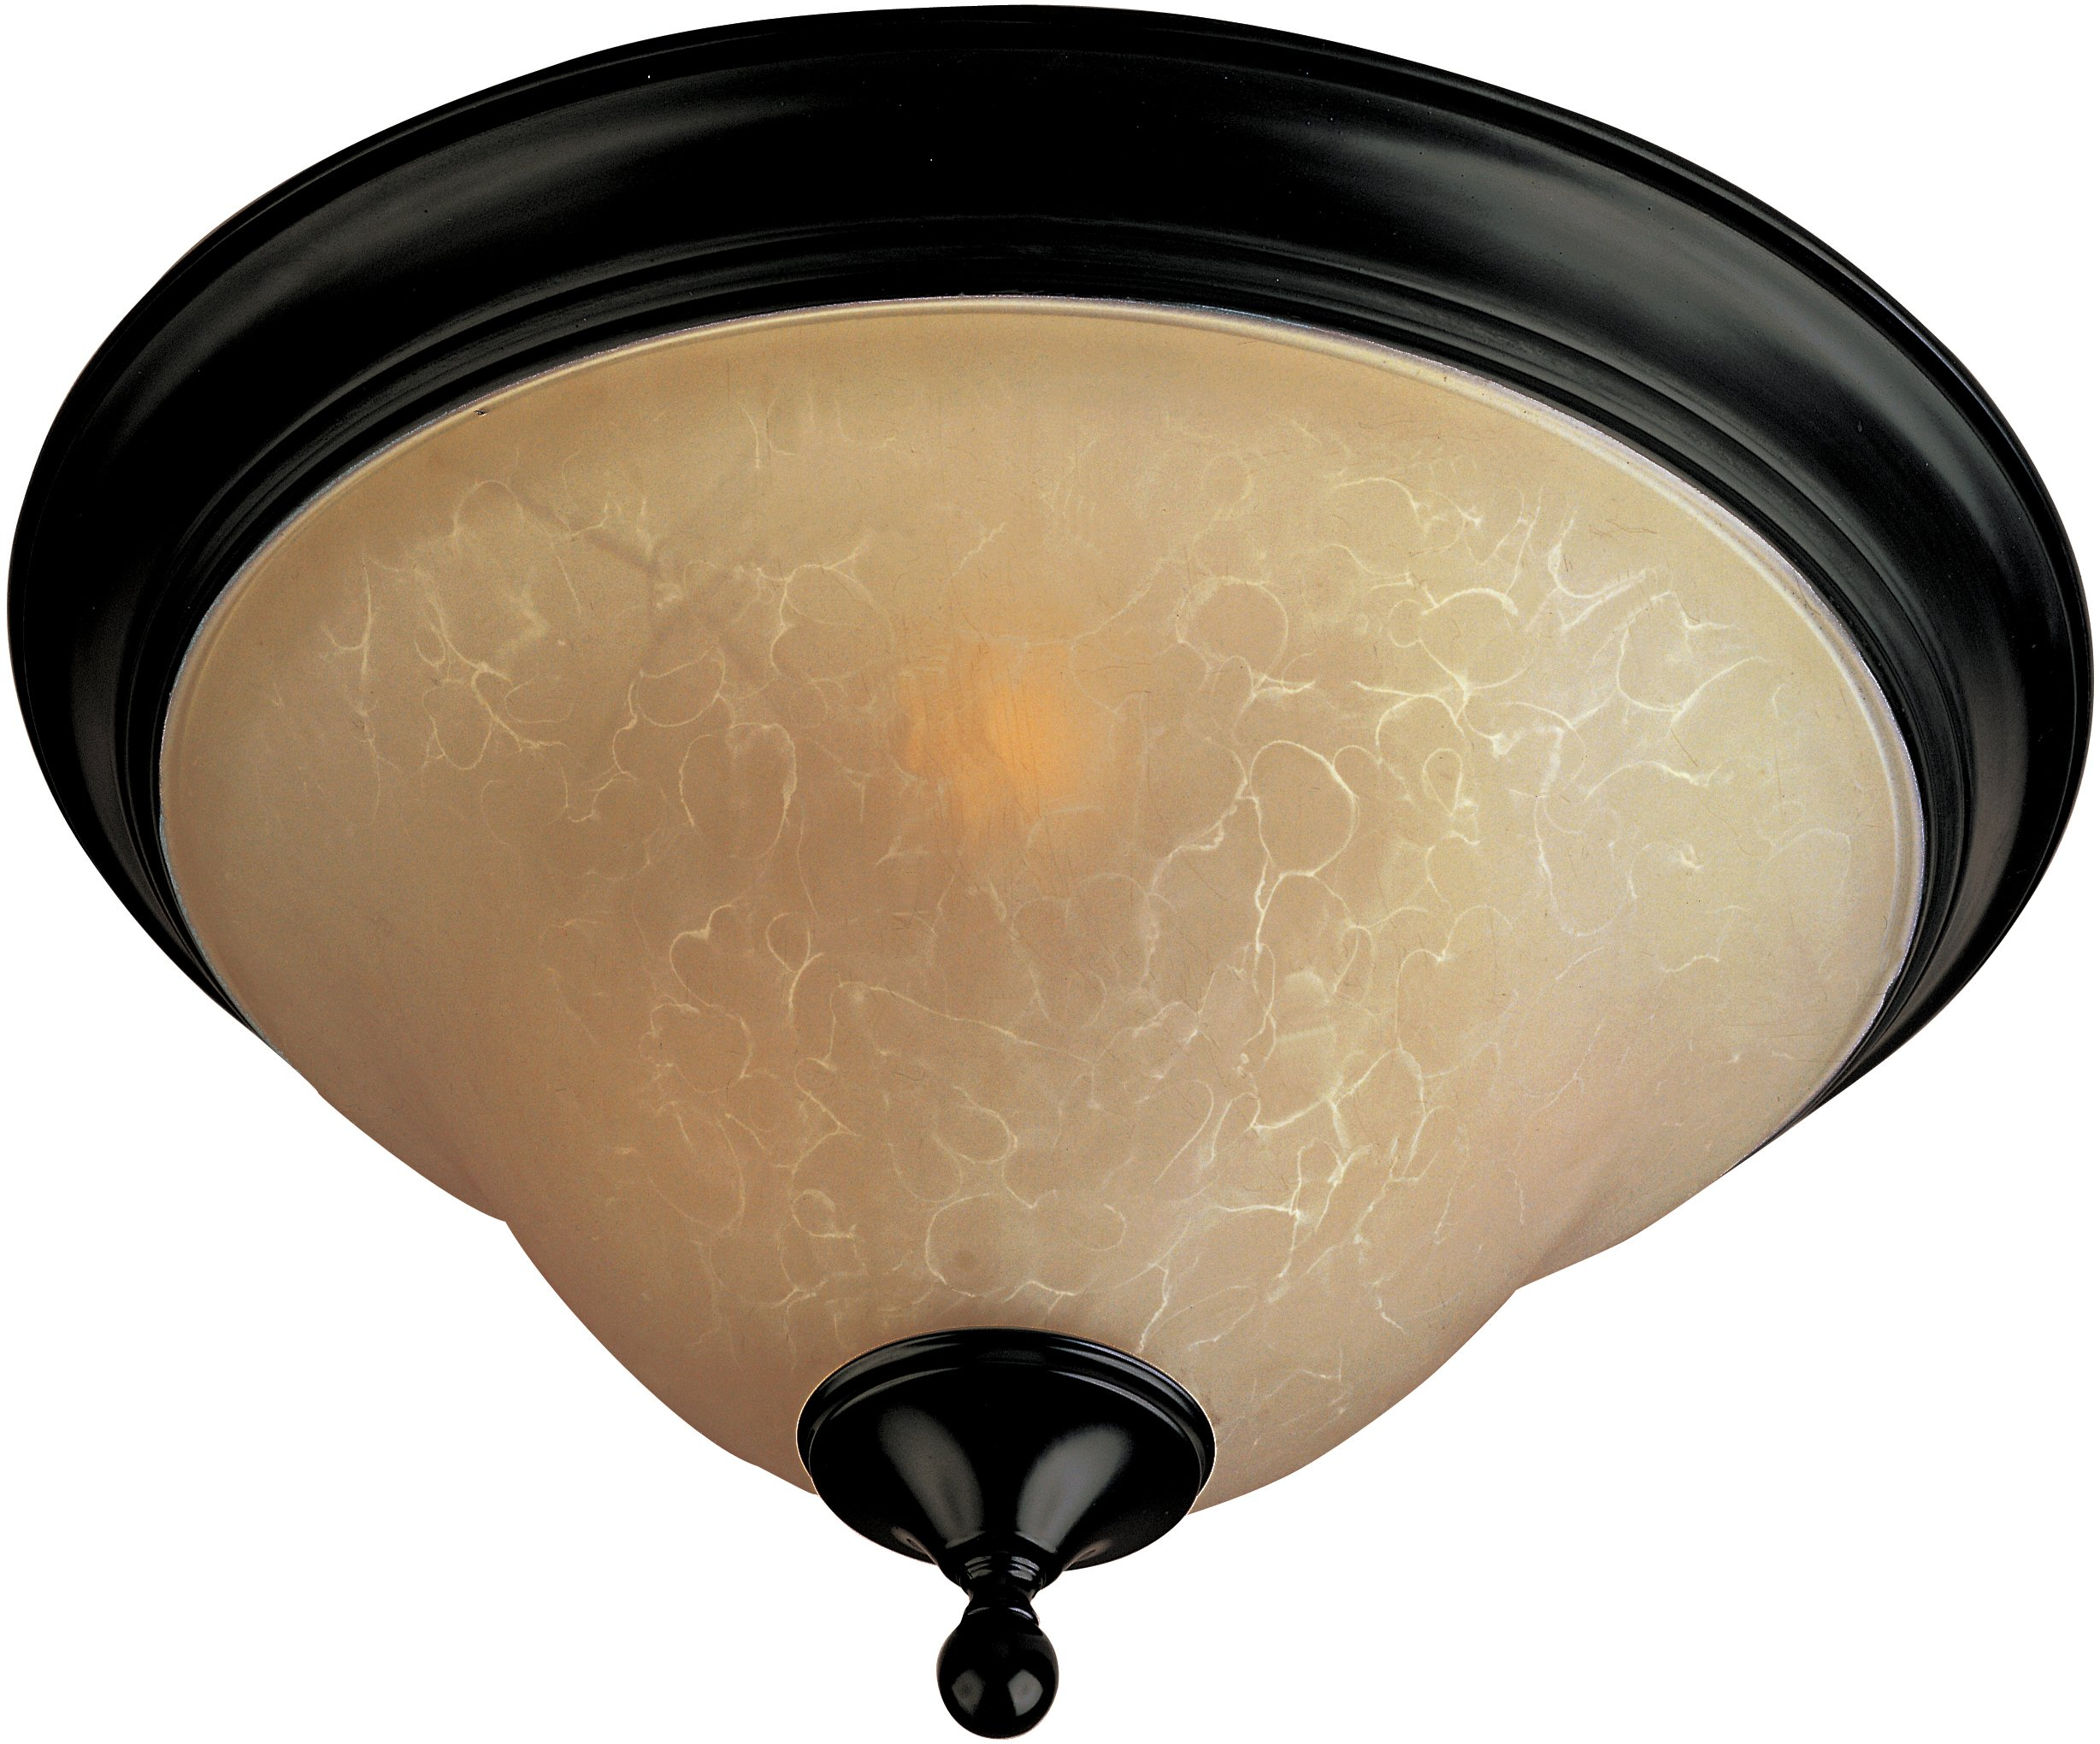 Maxim 85801WSOI Linda EE 3-Light Flush Mount, Oil Rubbed Bronze Finish, Wilshire Glass, GU24 Fluorescent Bulb , 100W Max., Wet Safety Rating, Standard Dimmable, Glass Shade Material, 1150 Rated Lumens